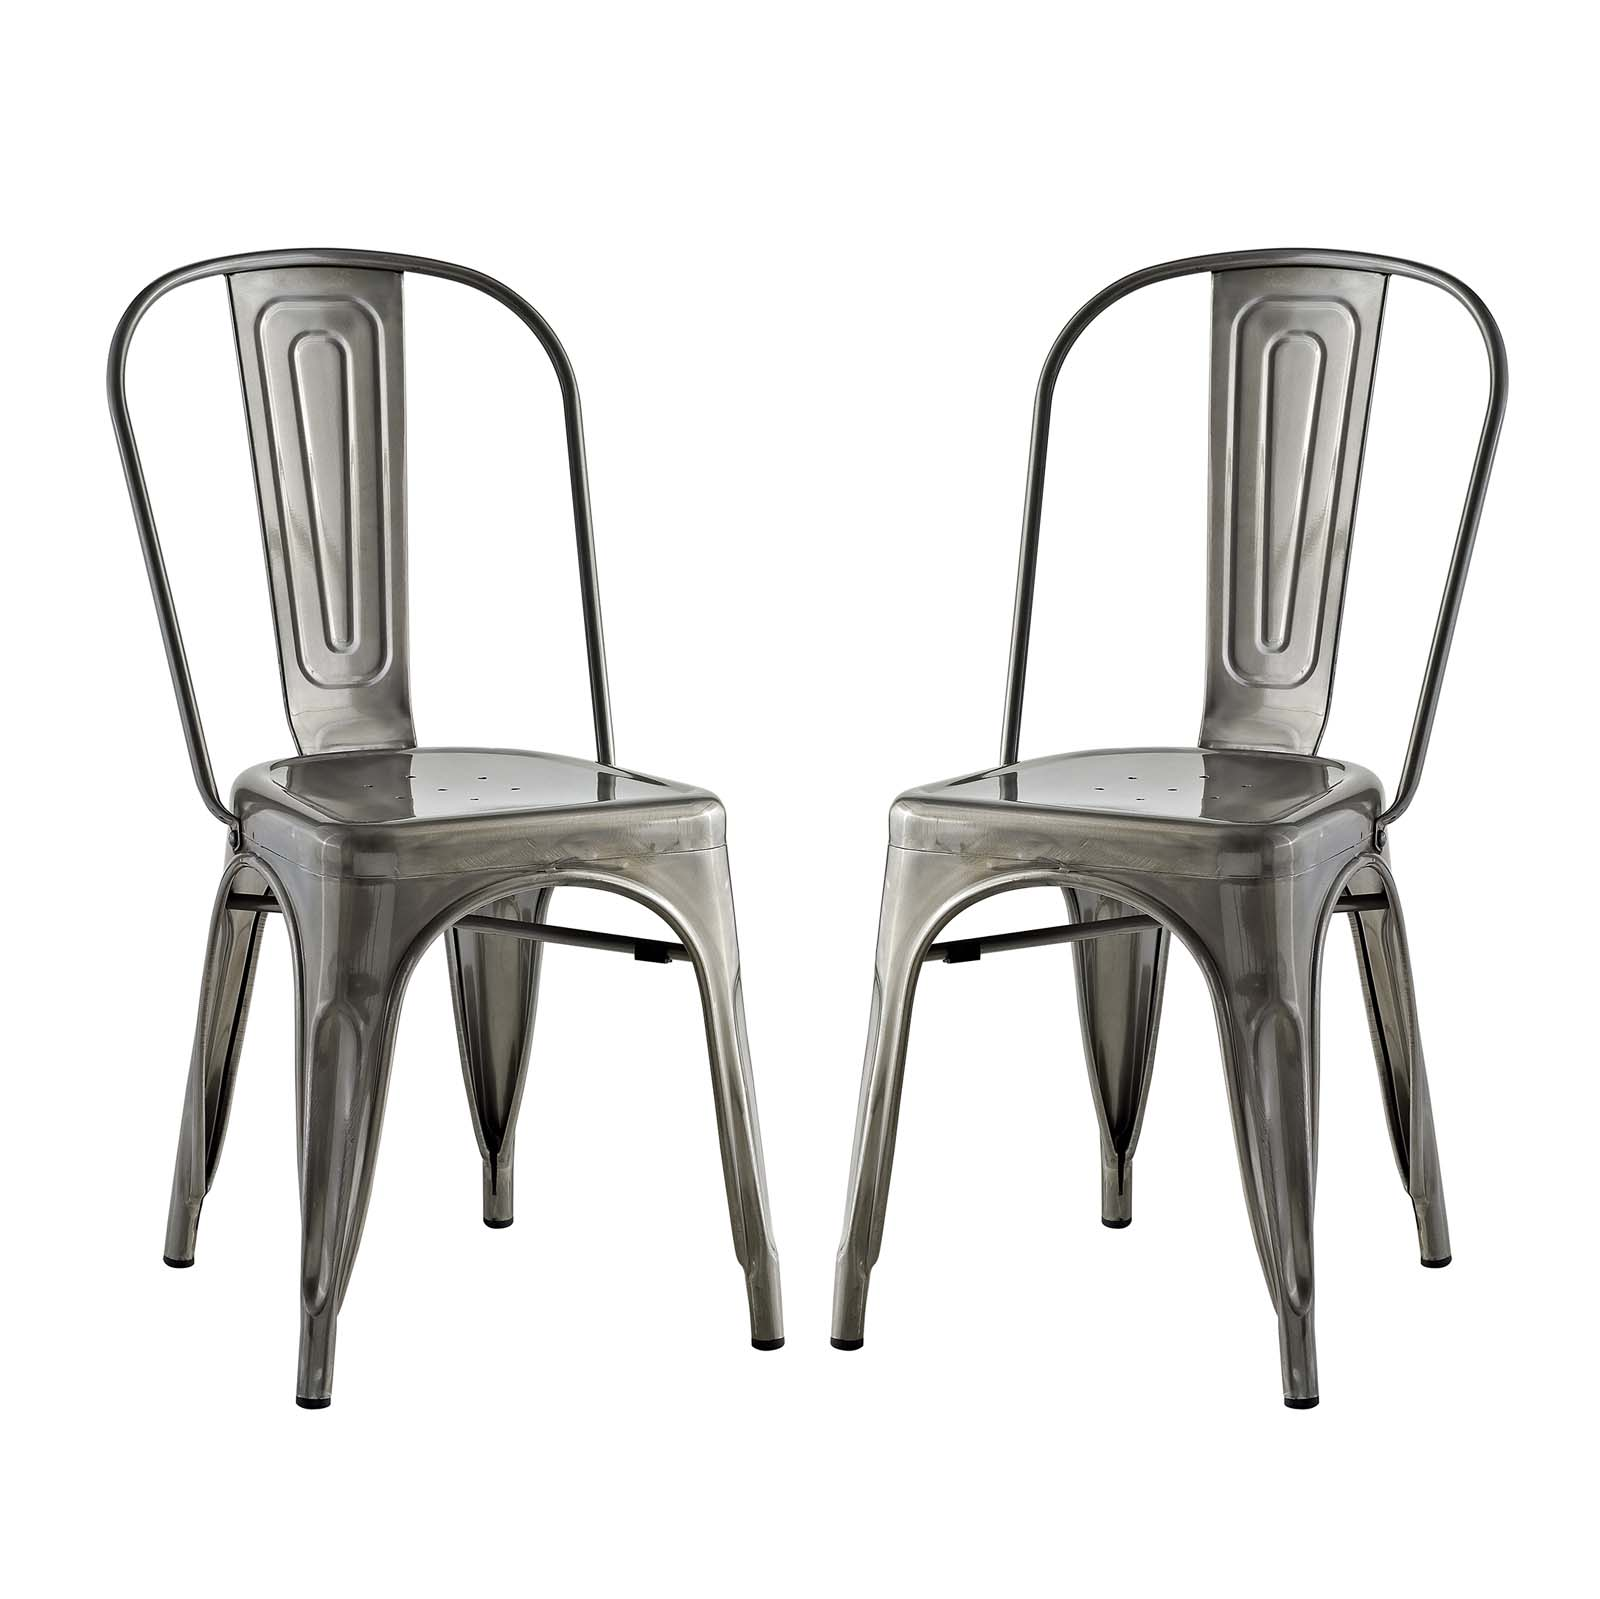 Modern Contemporary Urban Industrial Distressed Antique Vintage Style Kitchen Room Dining Chair ( Set of 2), Silver, Metal